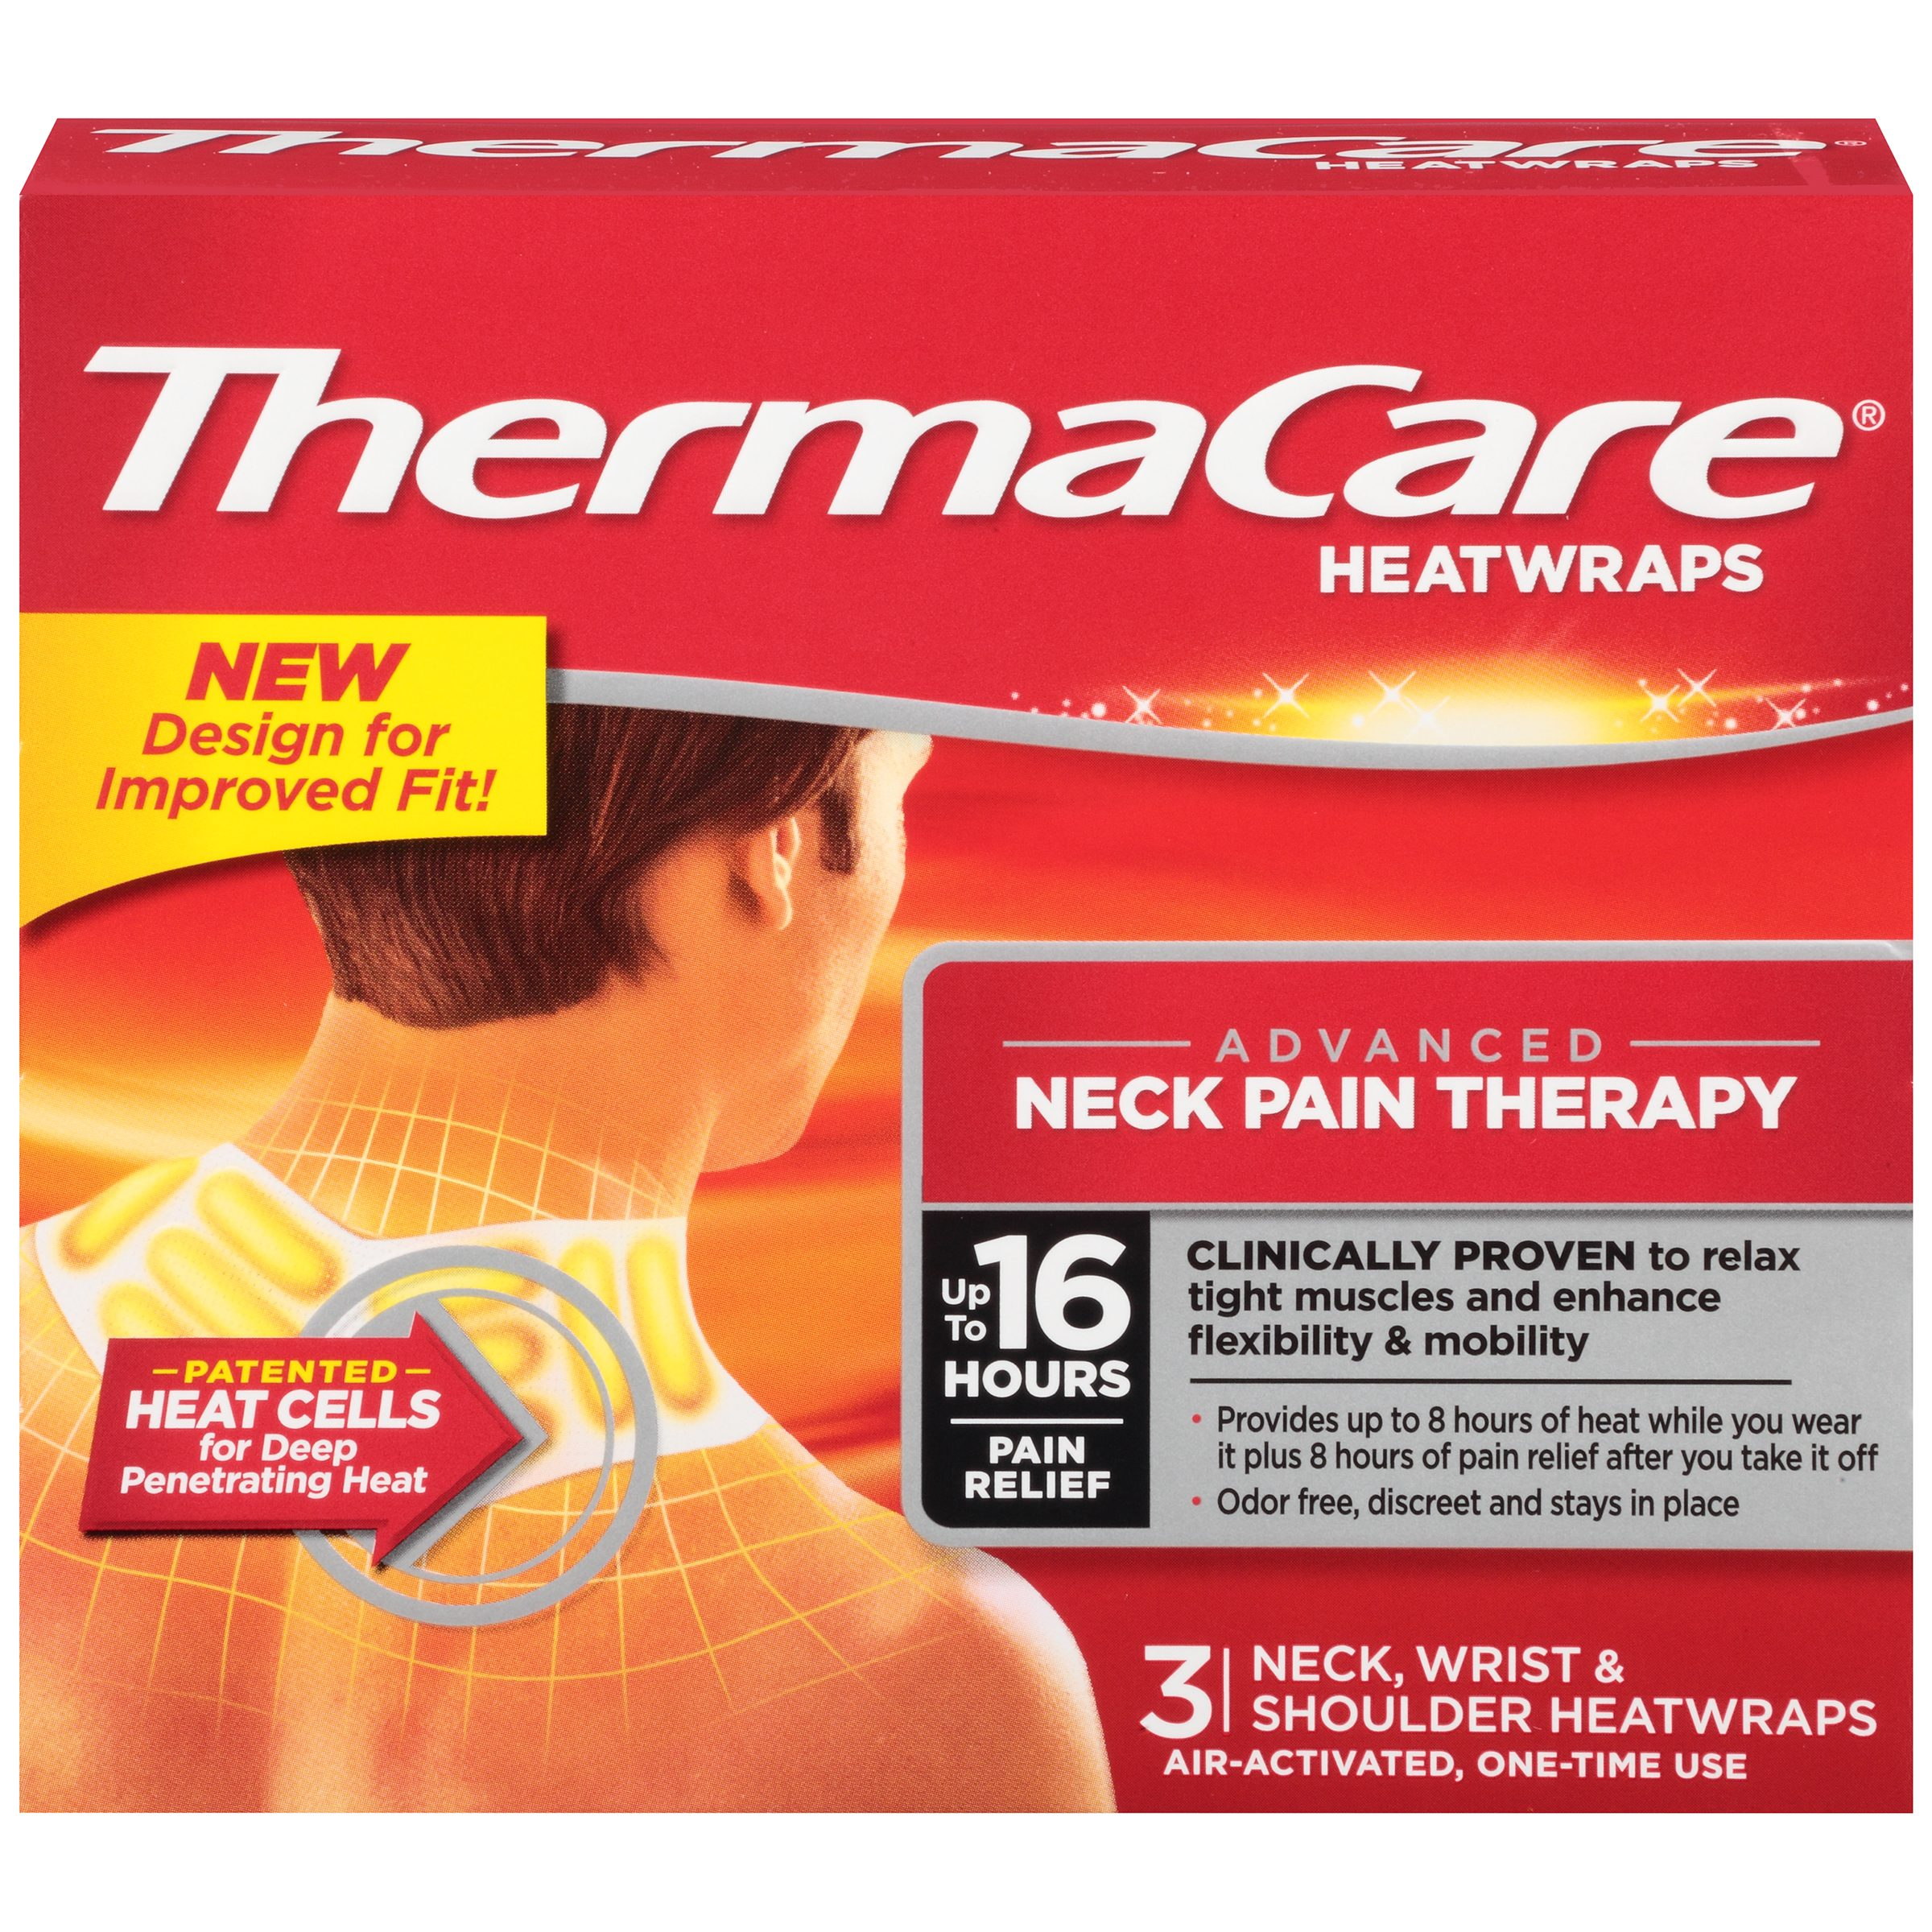 ThermaCare Advanced Neck Pain Therapy (3 Count) Heatwraps, Up to 16 Hours Pain Relief, Neck, Wrist, Shoulder Use, Temporary Relief of Muscular, Joint Pains